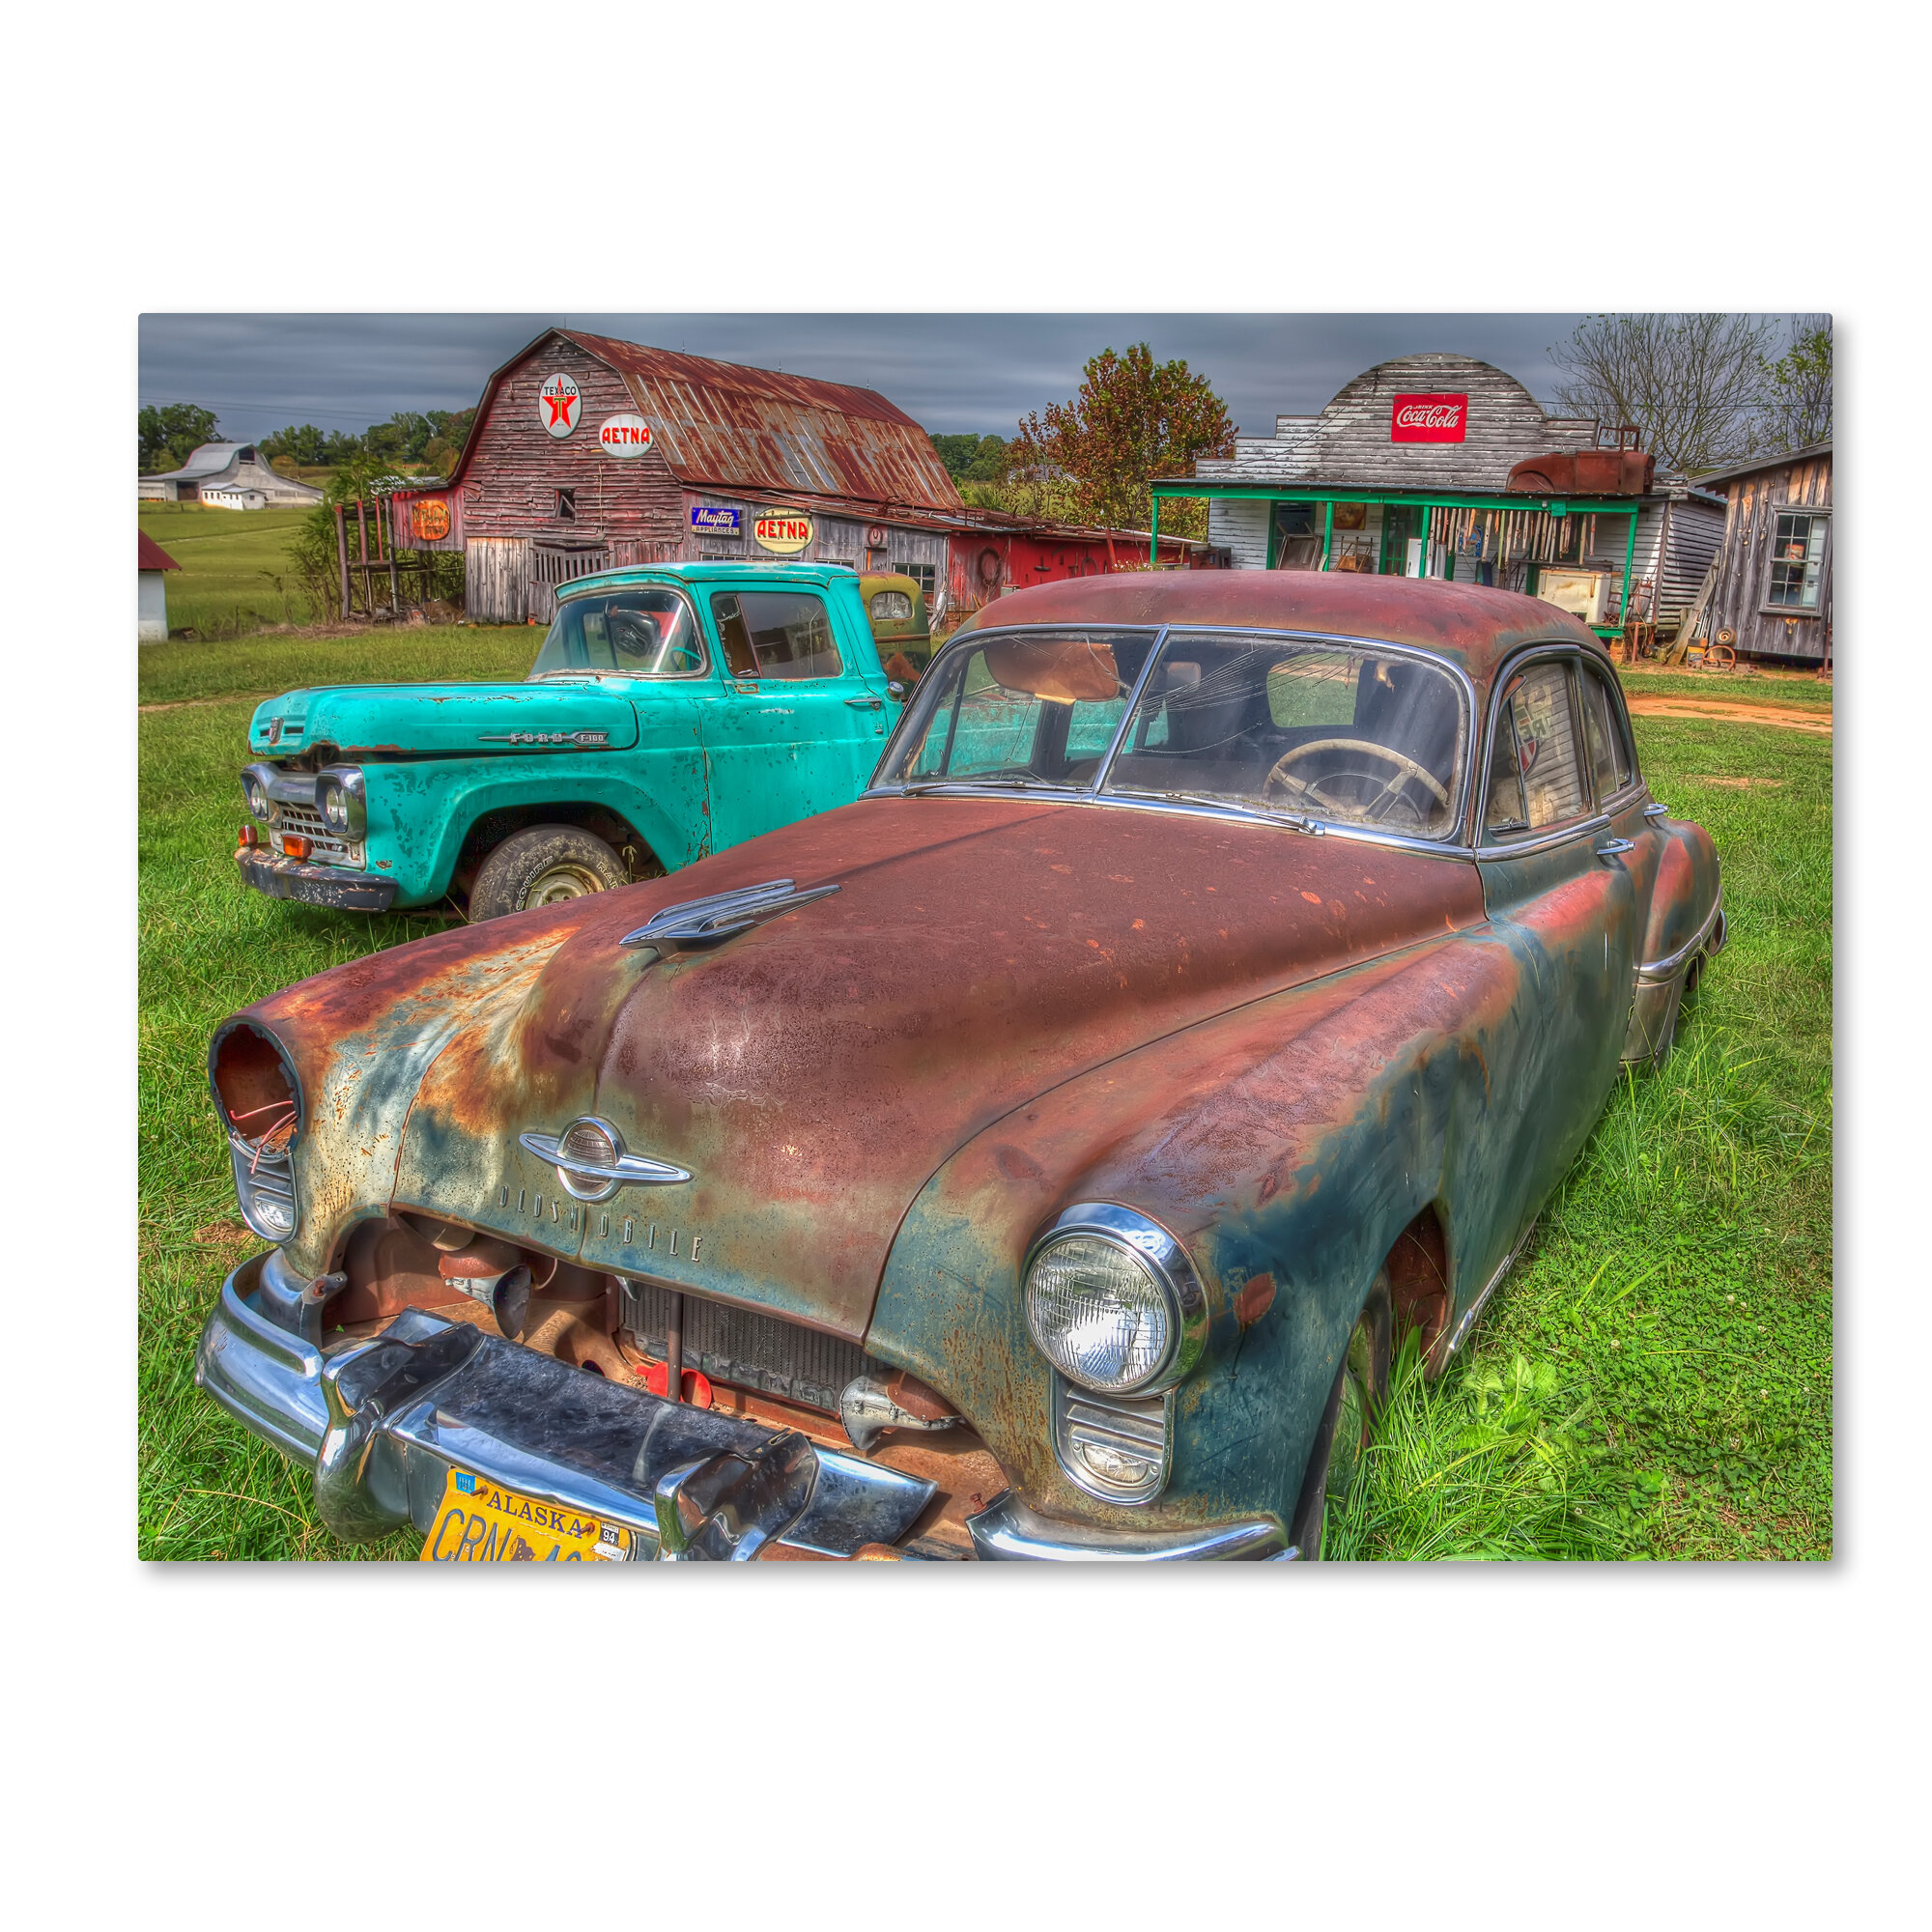 Trademark Art Olds And Ford Graphic Art Print On Wrapped Canvas Wayfair